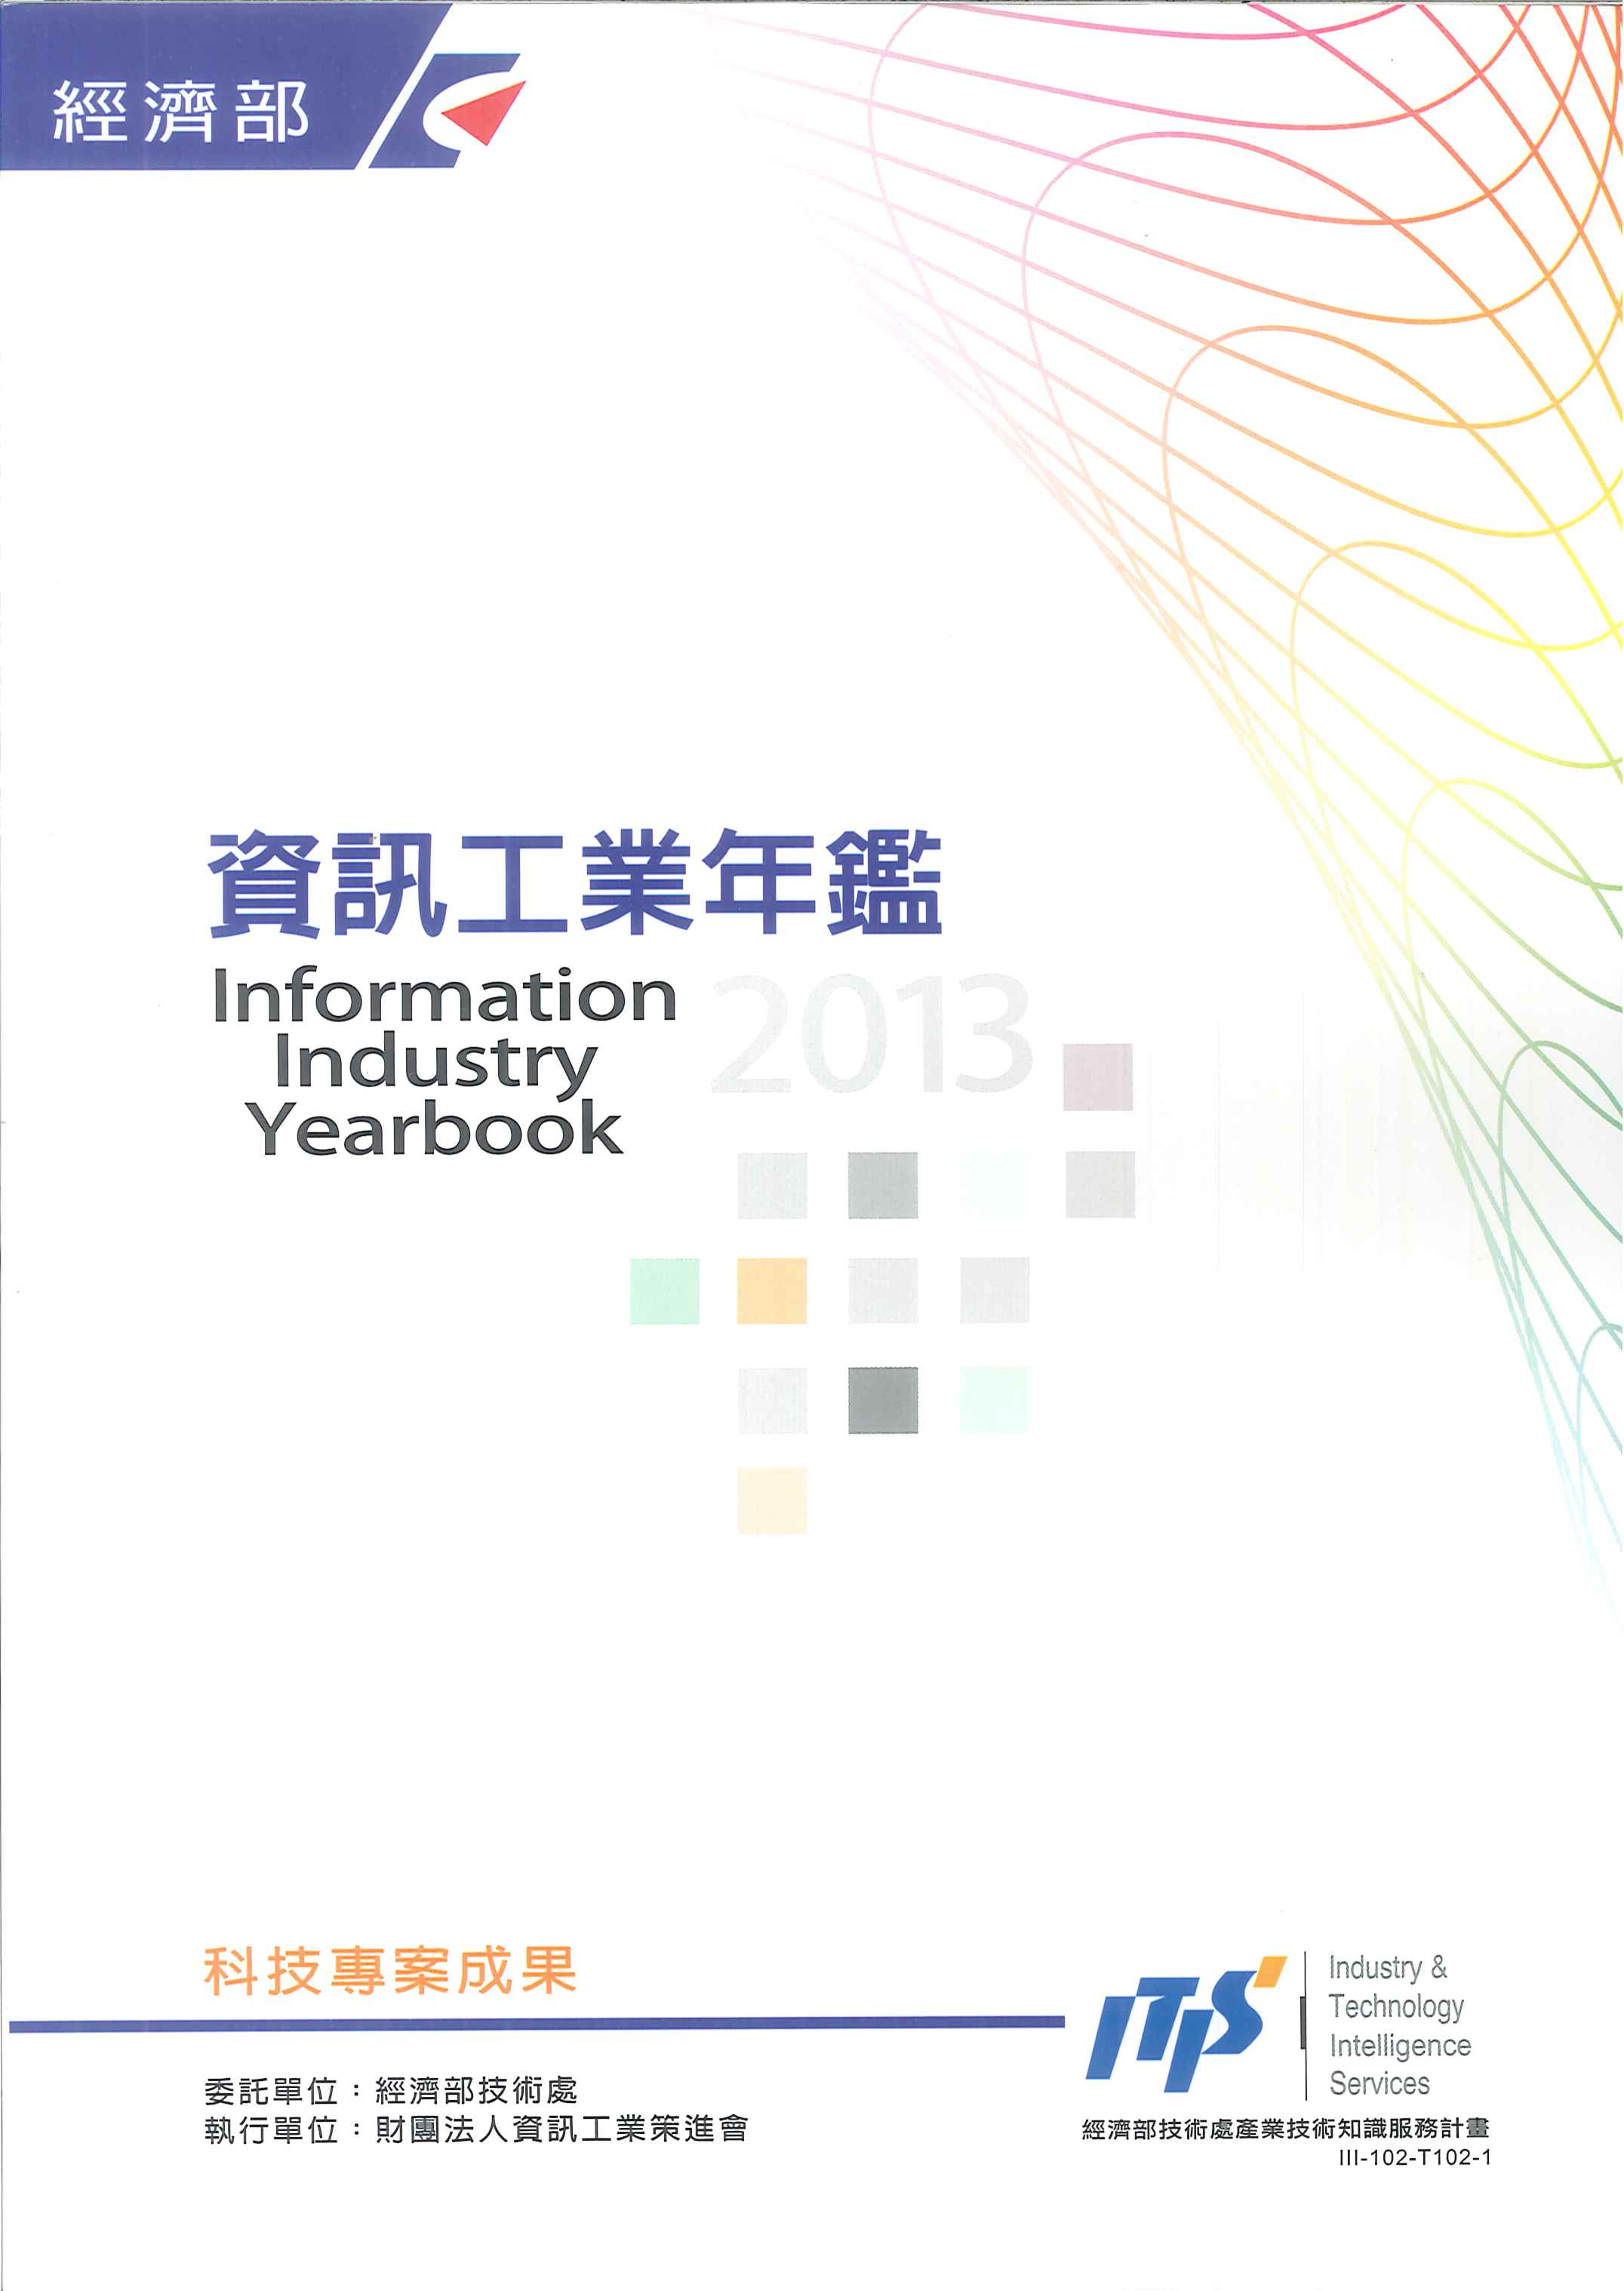 資訊工業年鑑=Information industry yearbook